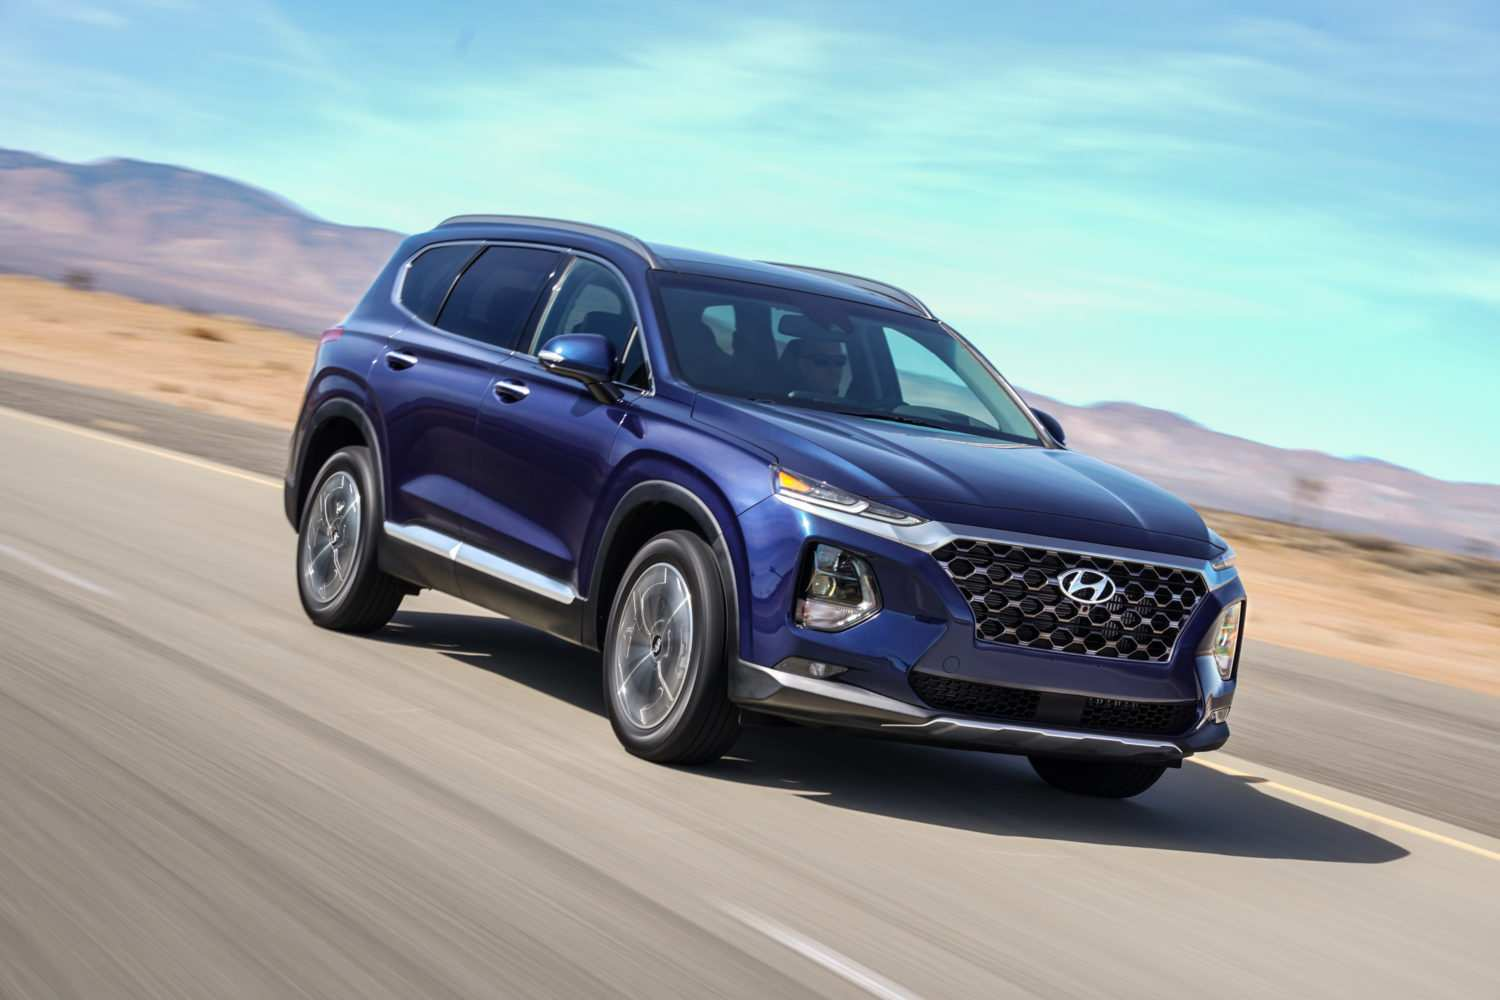 60 Gallery of 2019 Hyundai Full Size Suv Review for 2019 Hyundai Full Size Suv